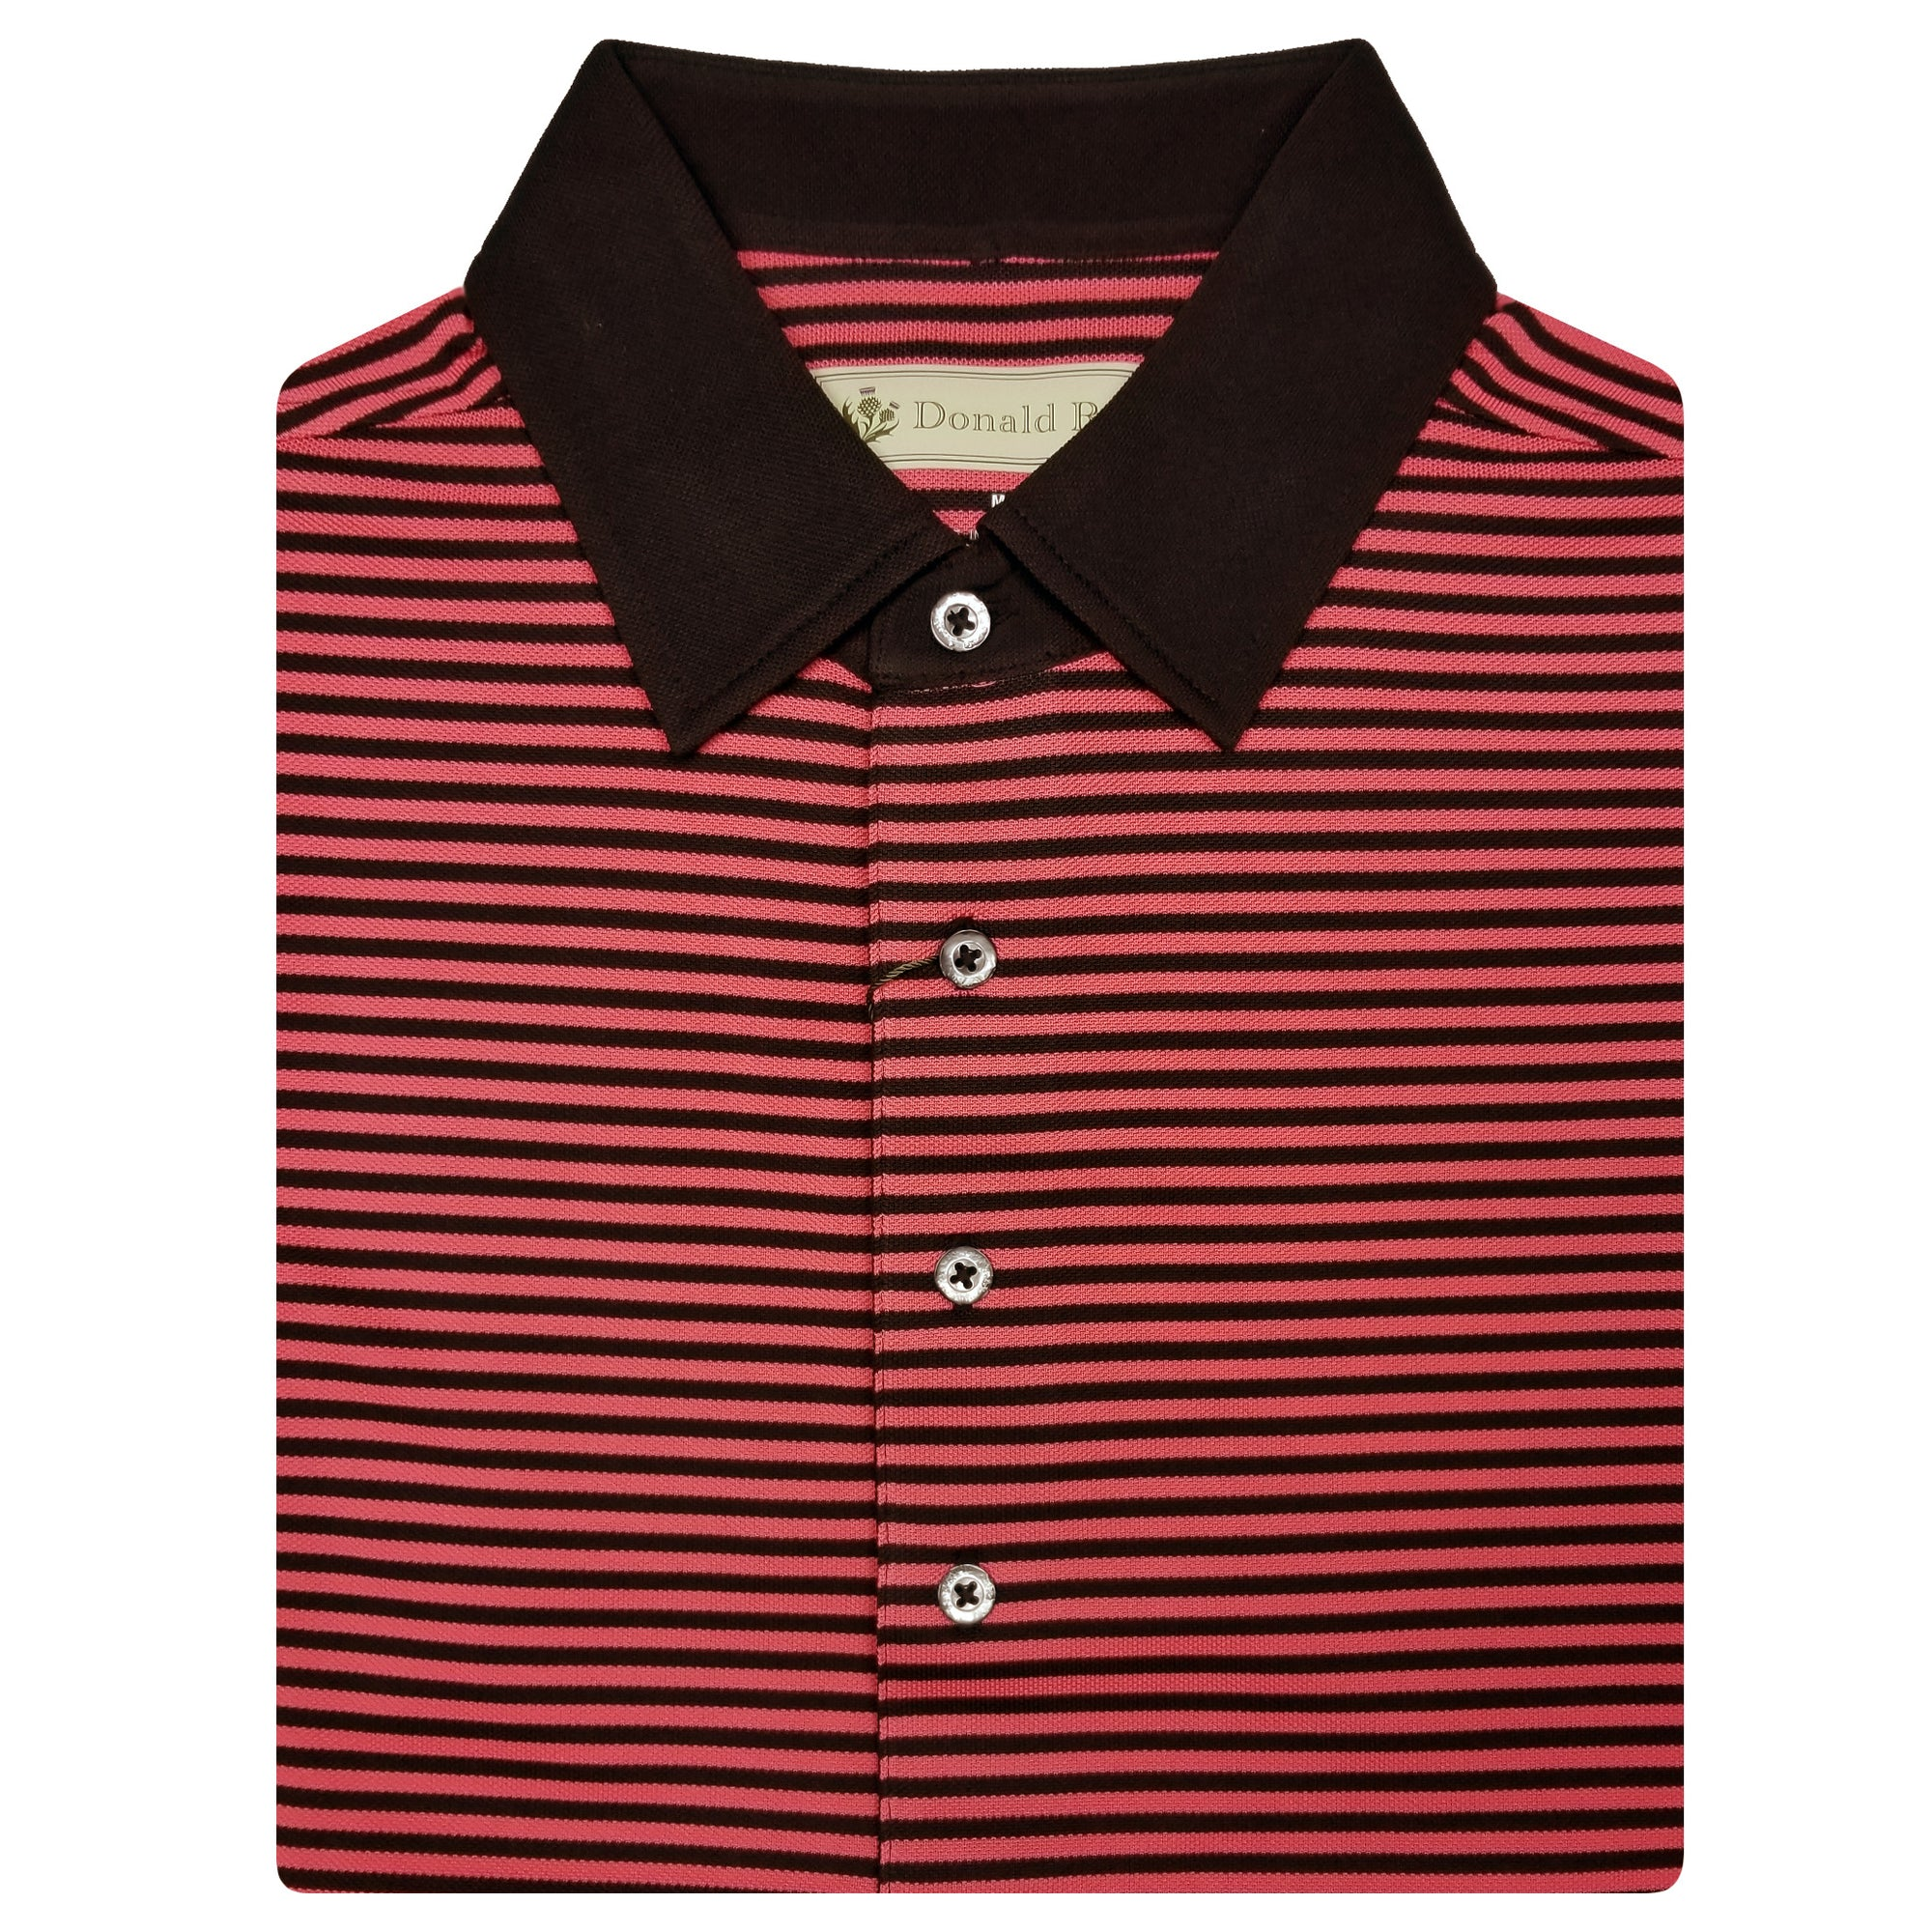 3db617d187d7c Mens Short Sleeve 2 Color Bold Stripe PIQUE on SOLID SELF COLLAR - BLA -  Golf Anything US